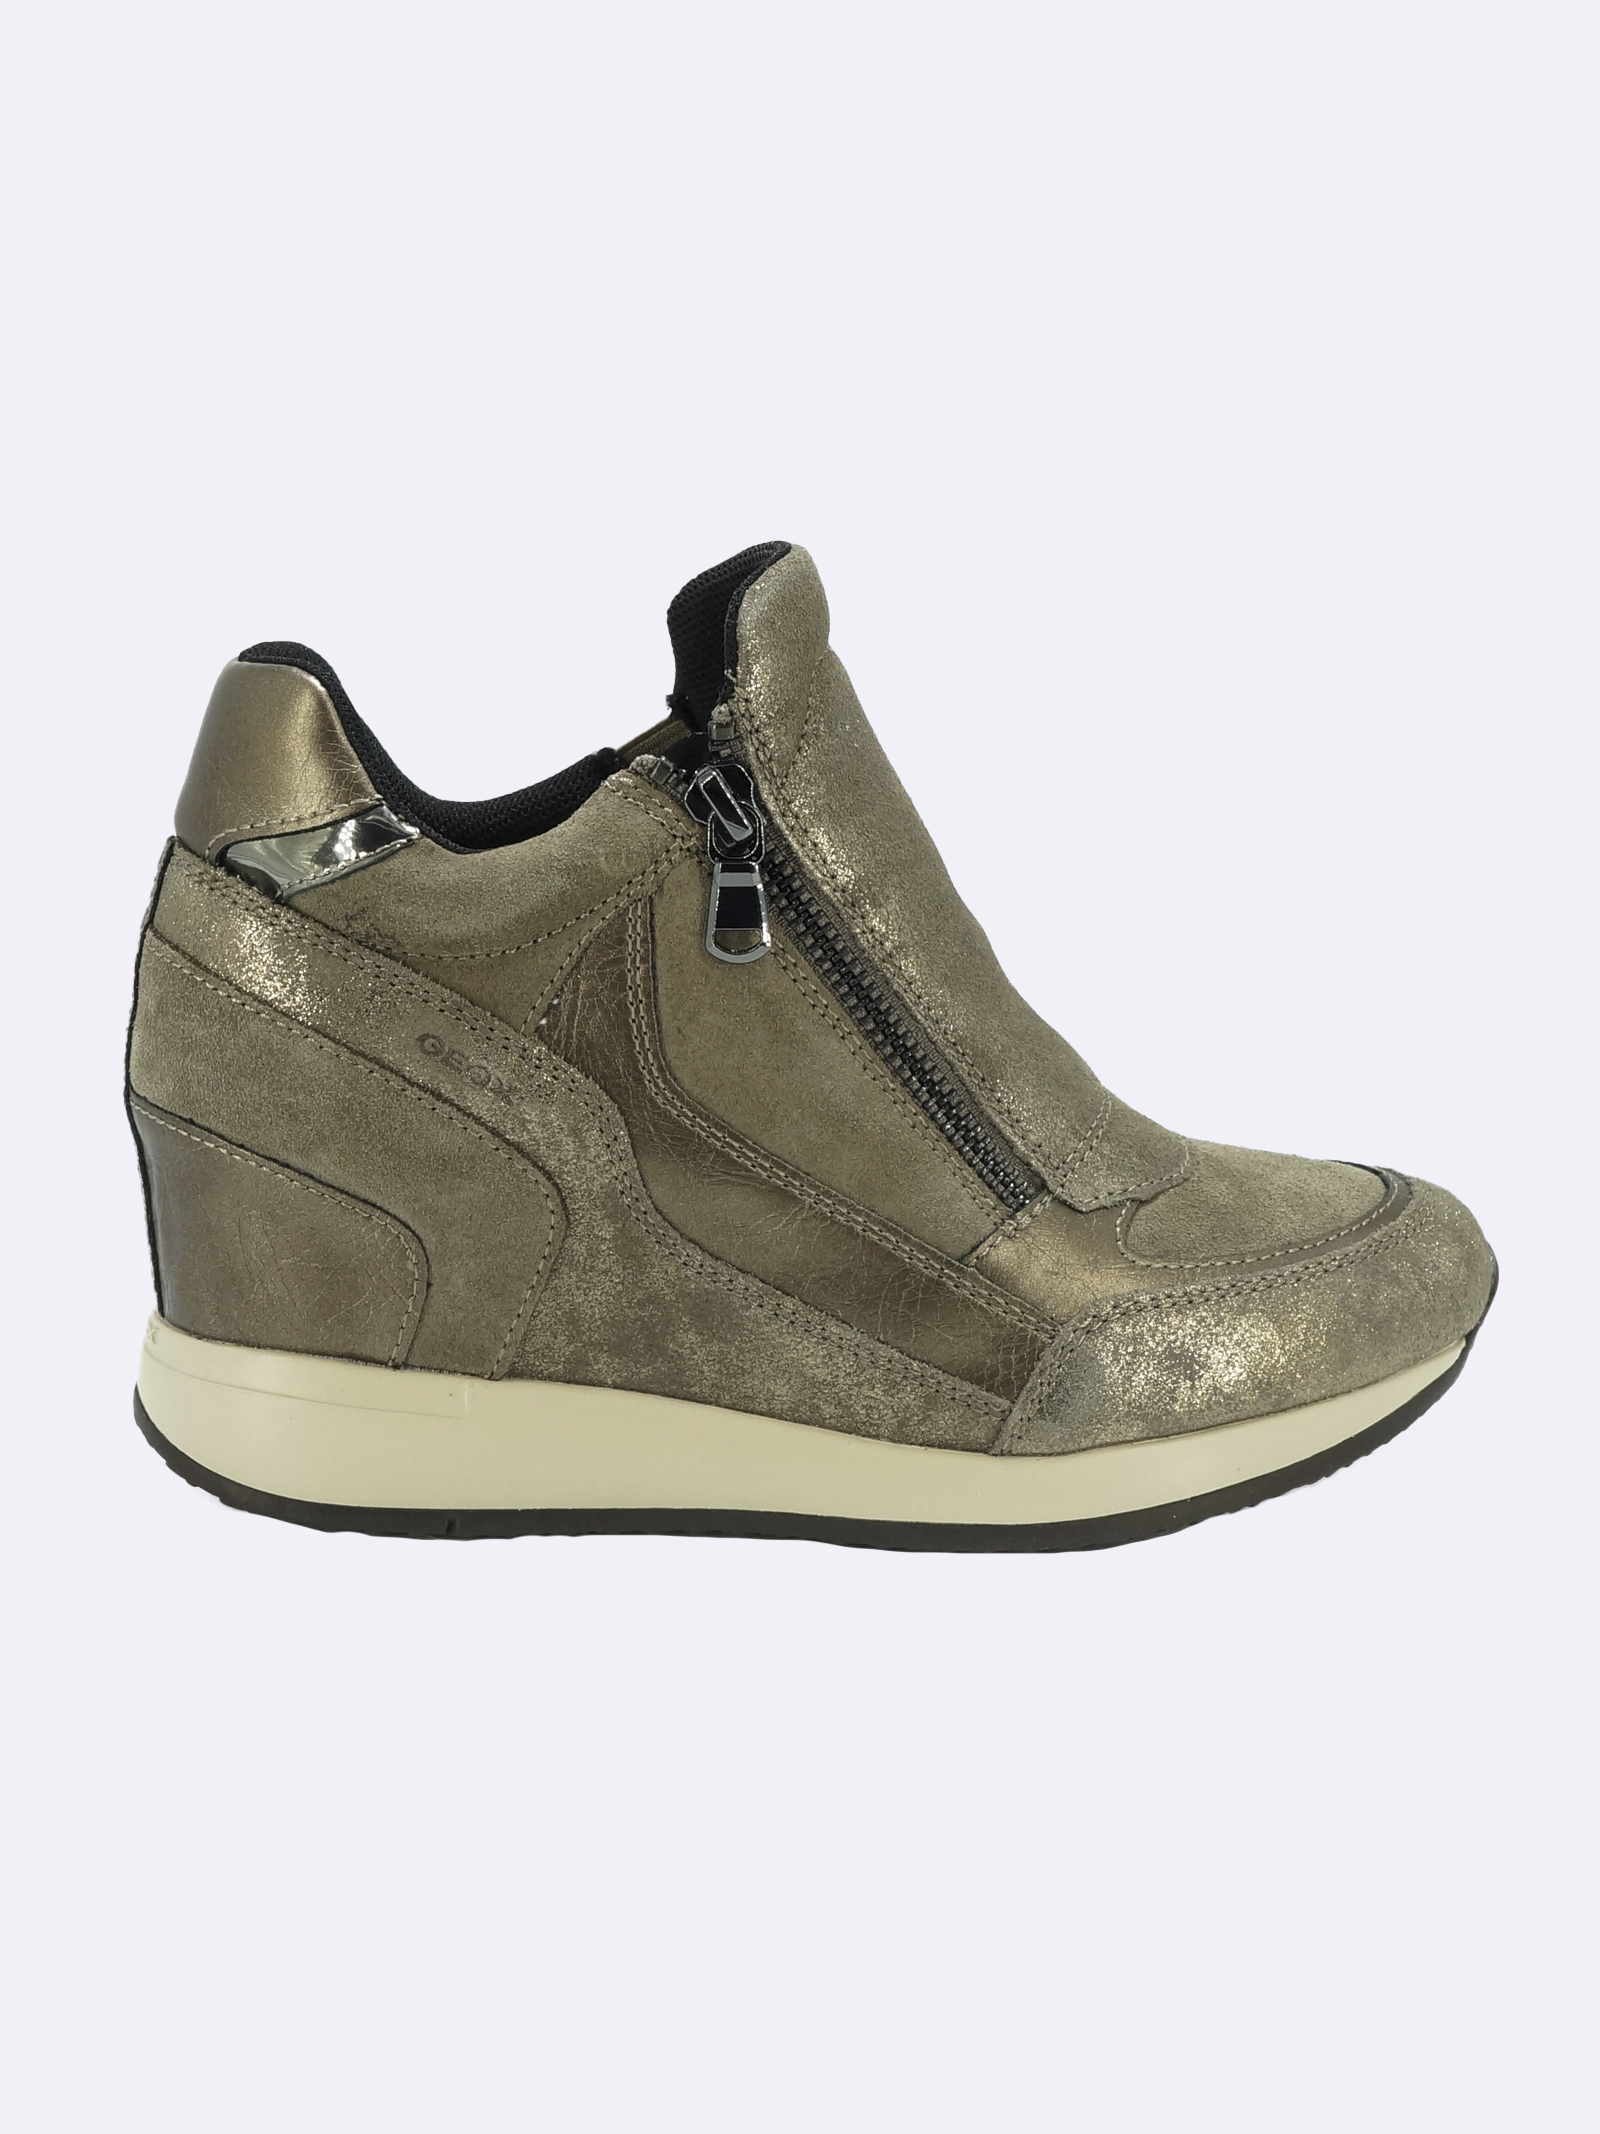 Sneakers Donna con Zeppa GEOX   Sneakers   NYDAMED620QATAUPEC5005